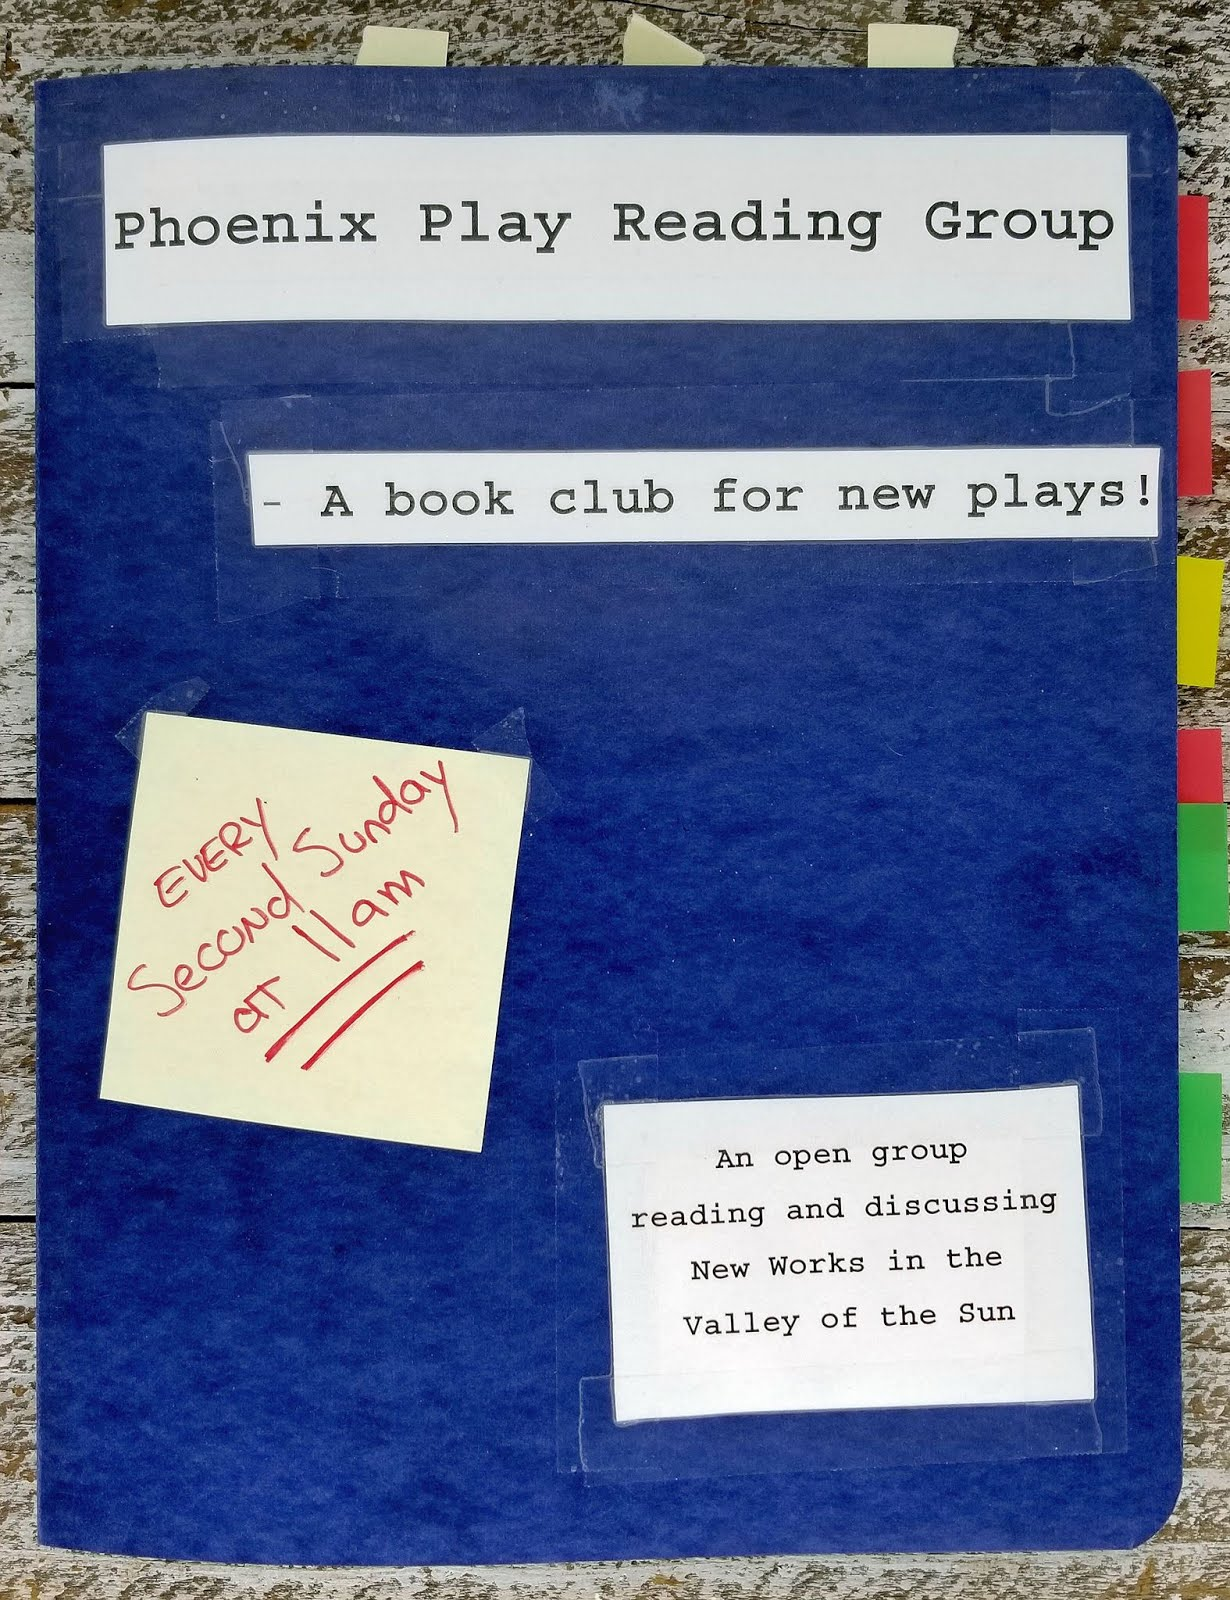 Phoenix Play Reading Group presents